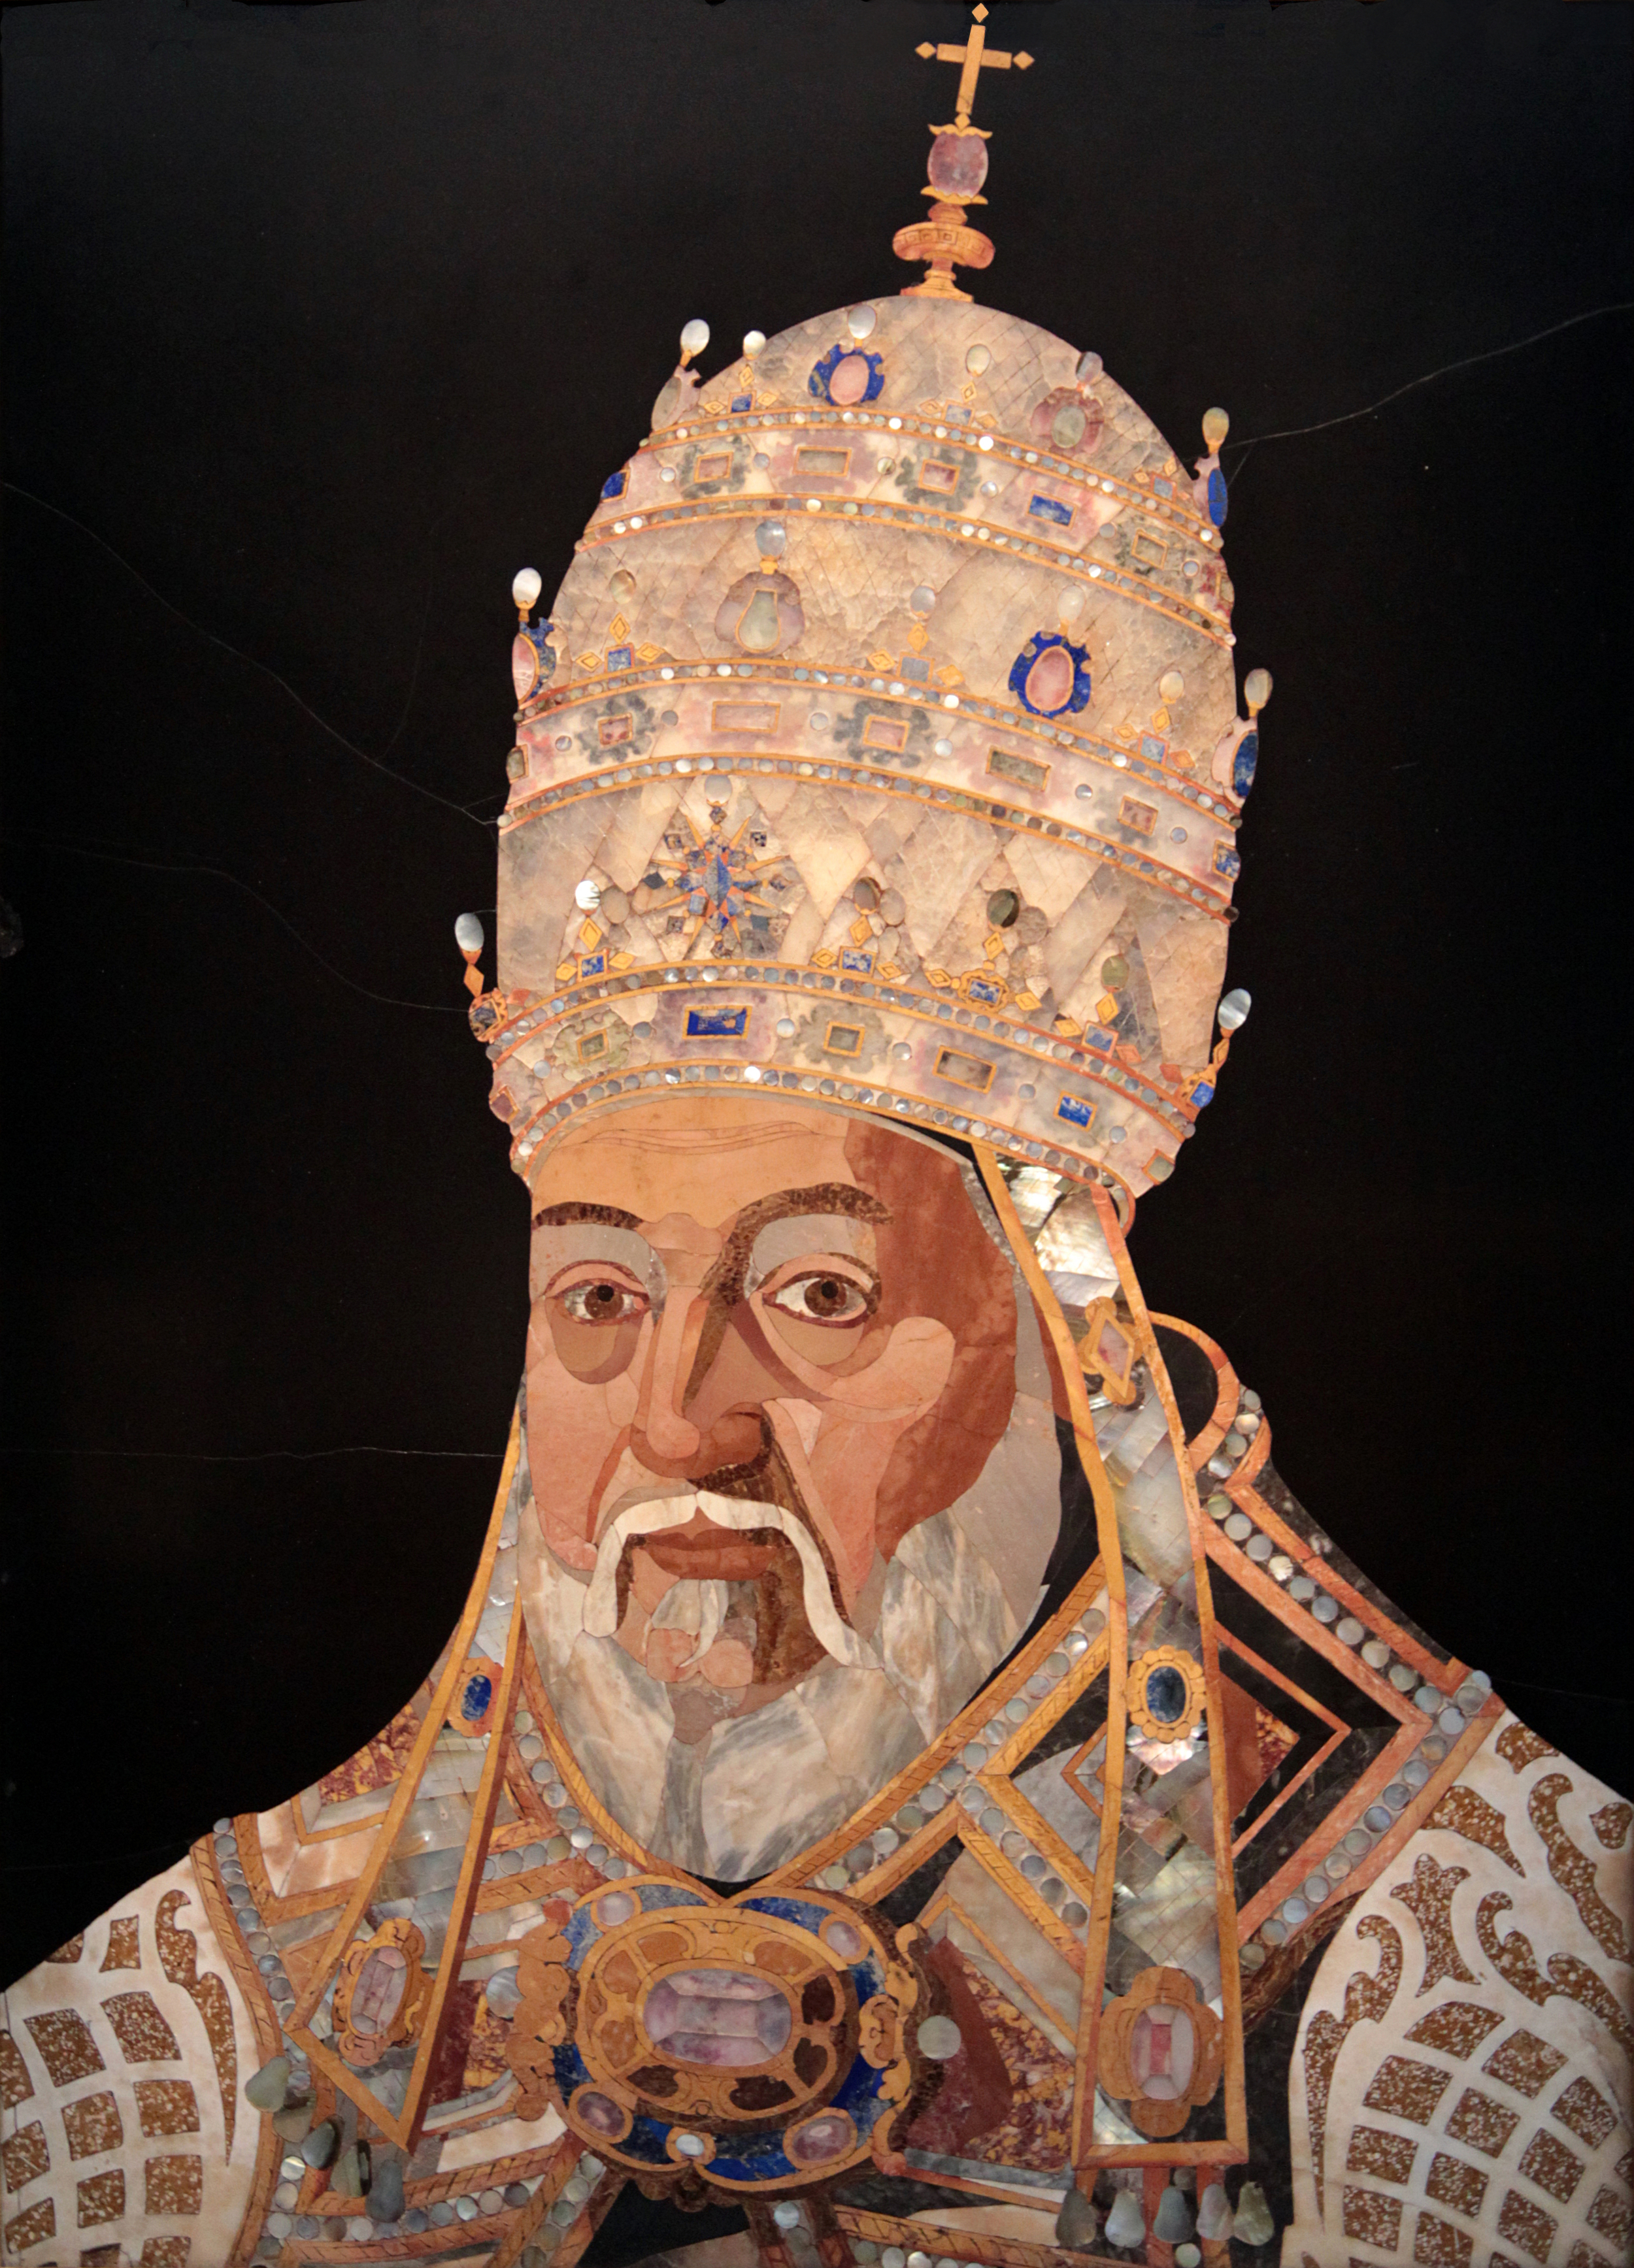 """""""Pope Clement VIII Aldobrandini"""", work made with marble, lapis lazuli, mother of pearl, limestone, calcite and black stone (H. 101.7 cm, l. 75.2 cm) by Medici workshops, on a draft by Jacopo Ligozzi, between 1601 and 1602.J. Paul Getty Museum Collection CC Jean-Pol Grandmont"""